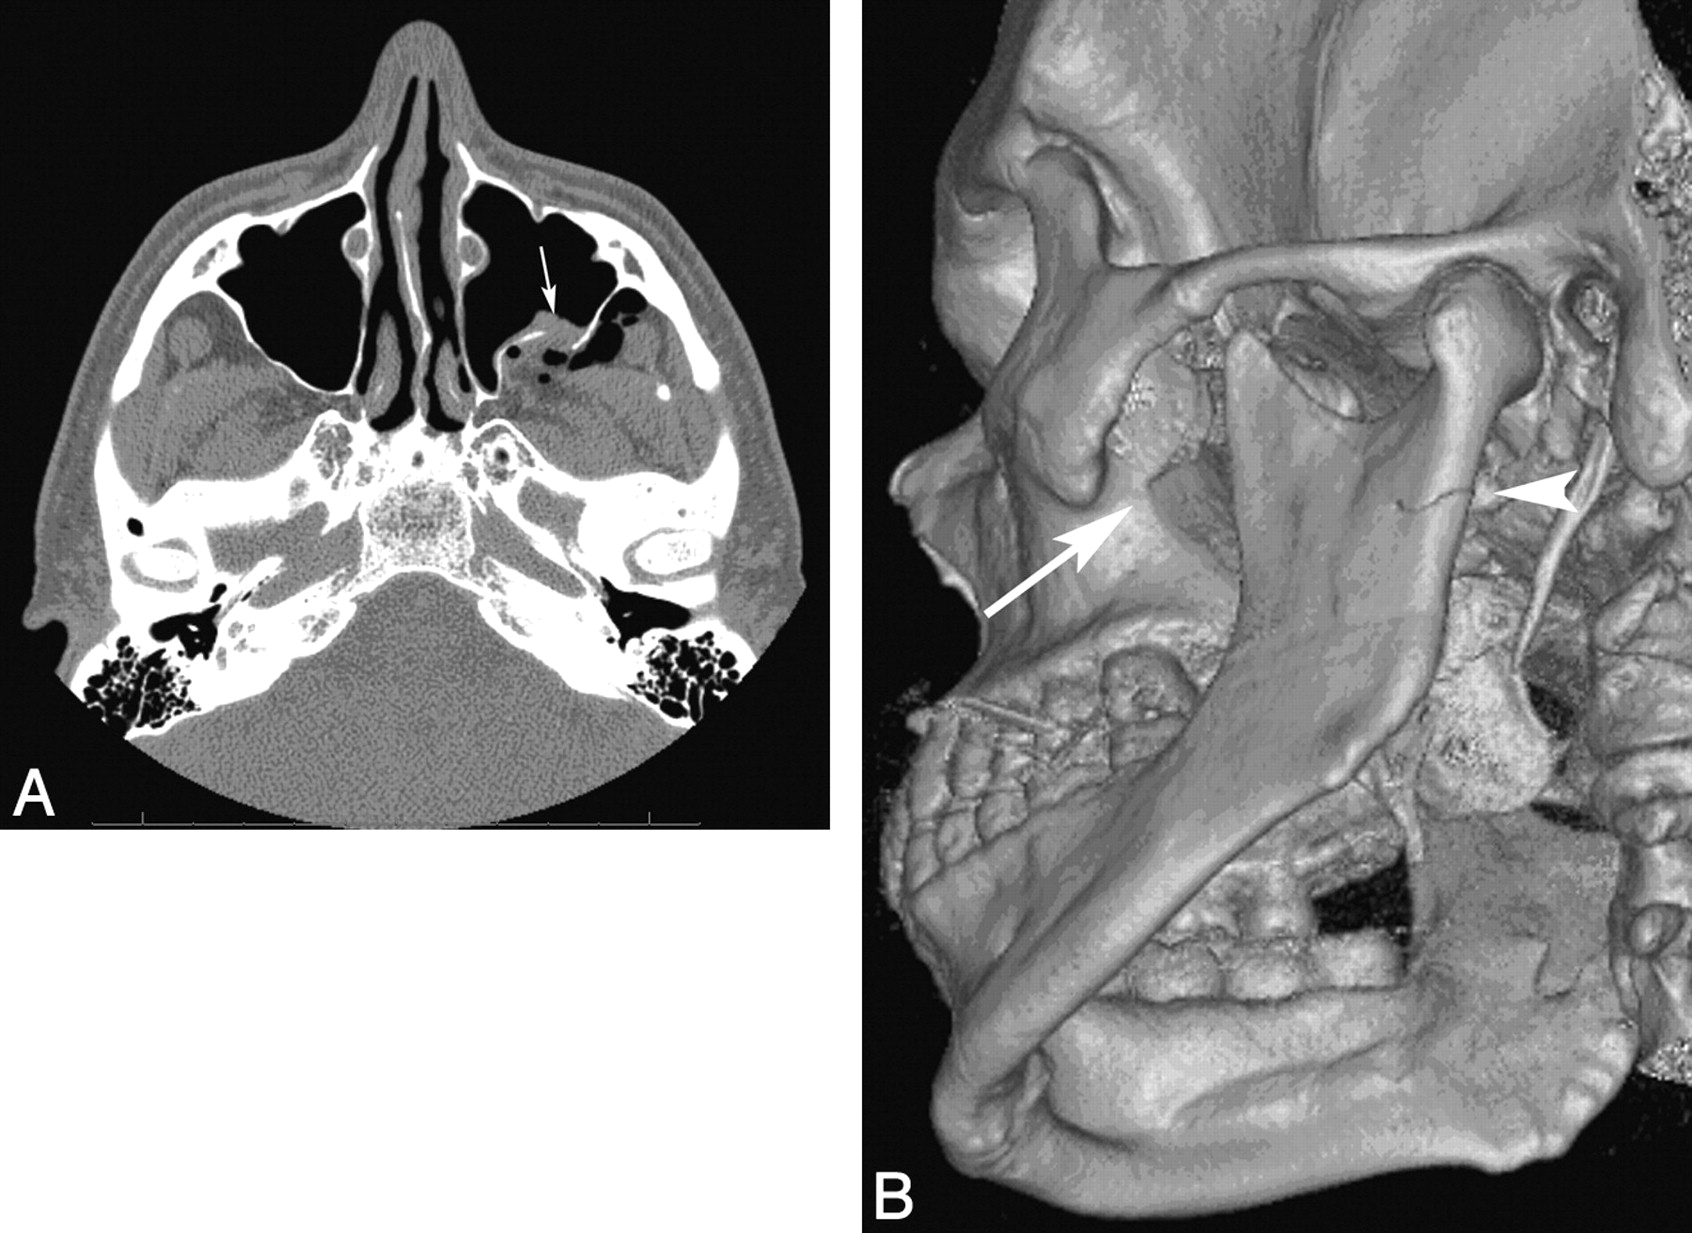 Isolated Fractures of the Posterior Maxillary Sinus: CT Appearance ...